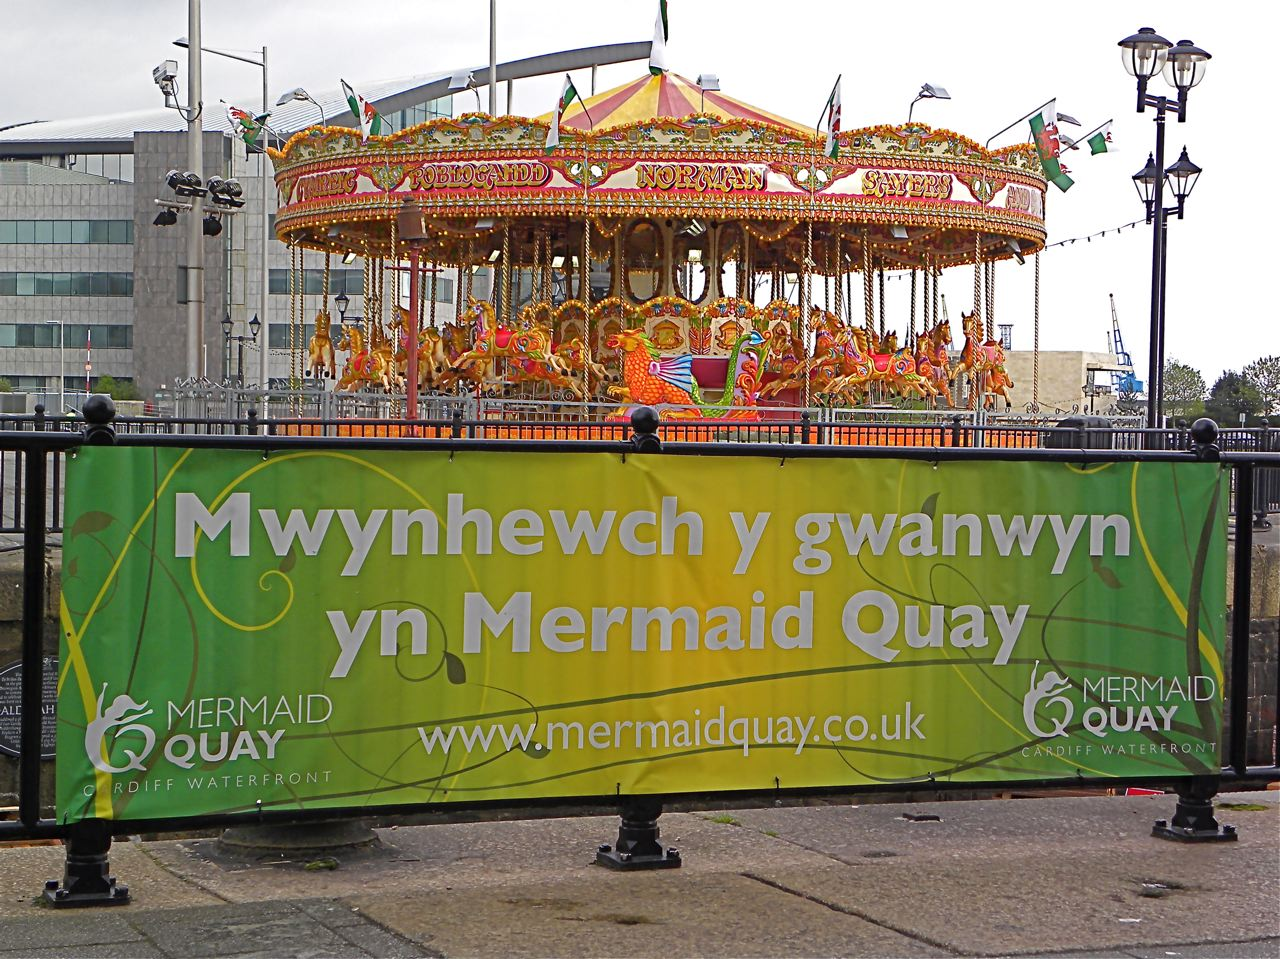 """The carousel is a touch of whimsy amid the modern architecture in renovated Cardiff Bay. In Welsh, the banner advises, """"Enjoy the spring in Mermaid Quay'' -- the name of the restaurant and entertainment complex."""